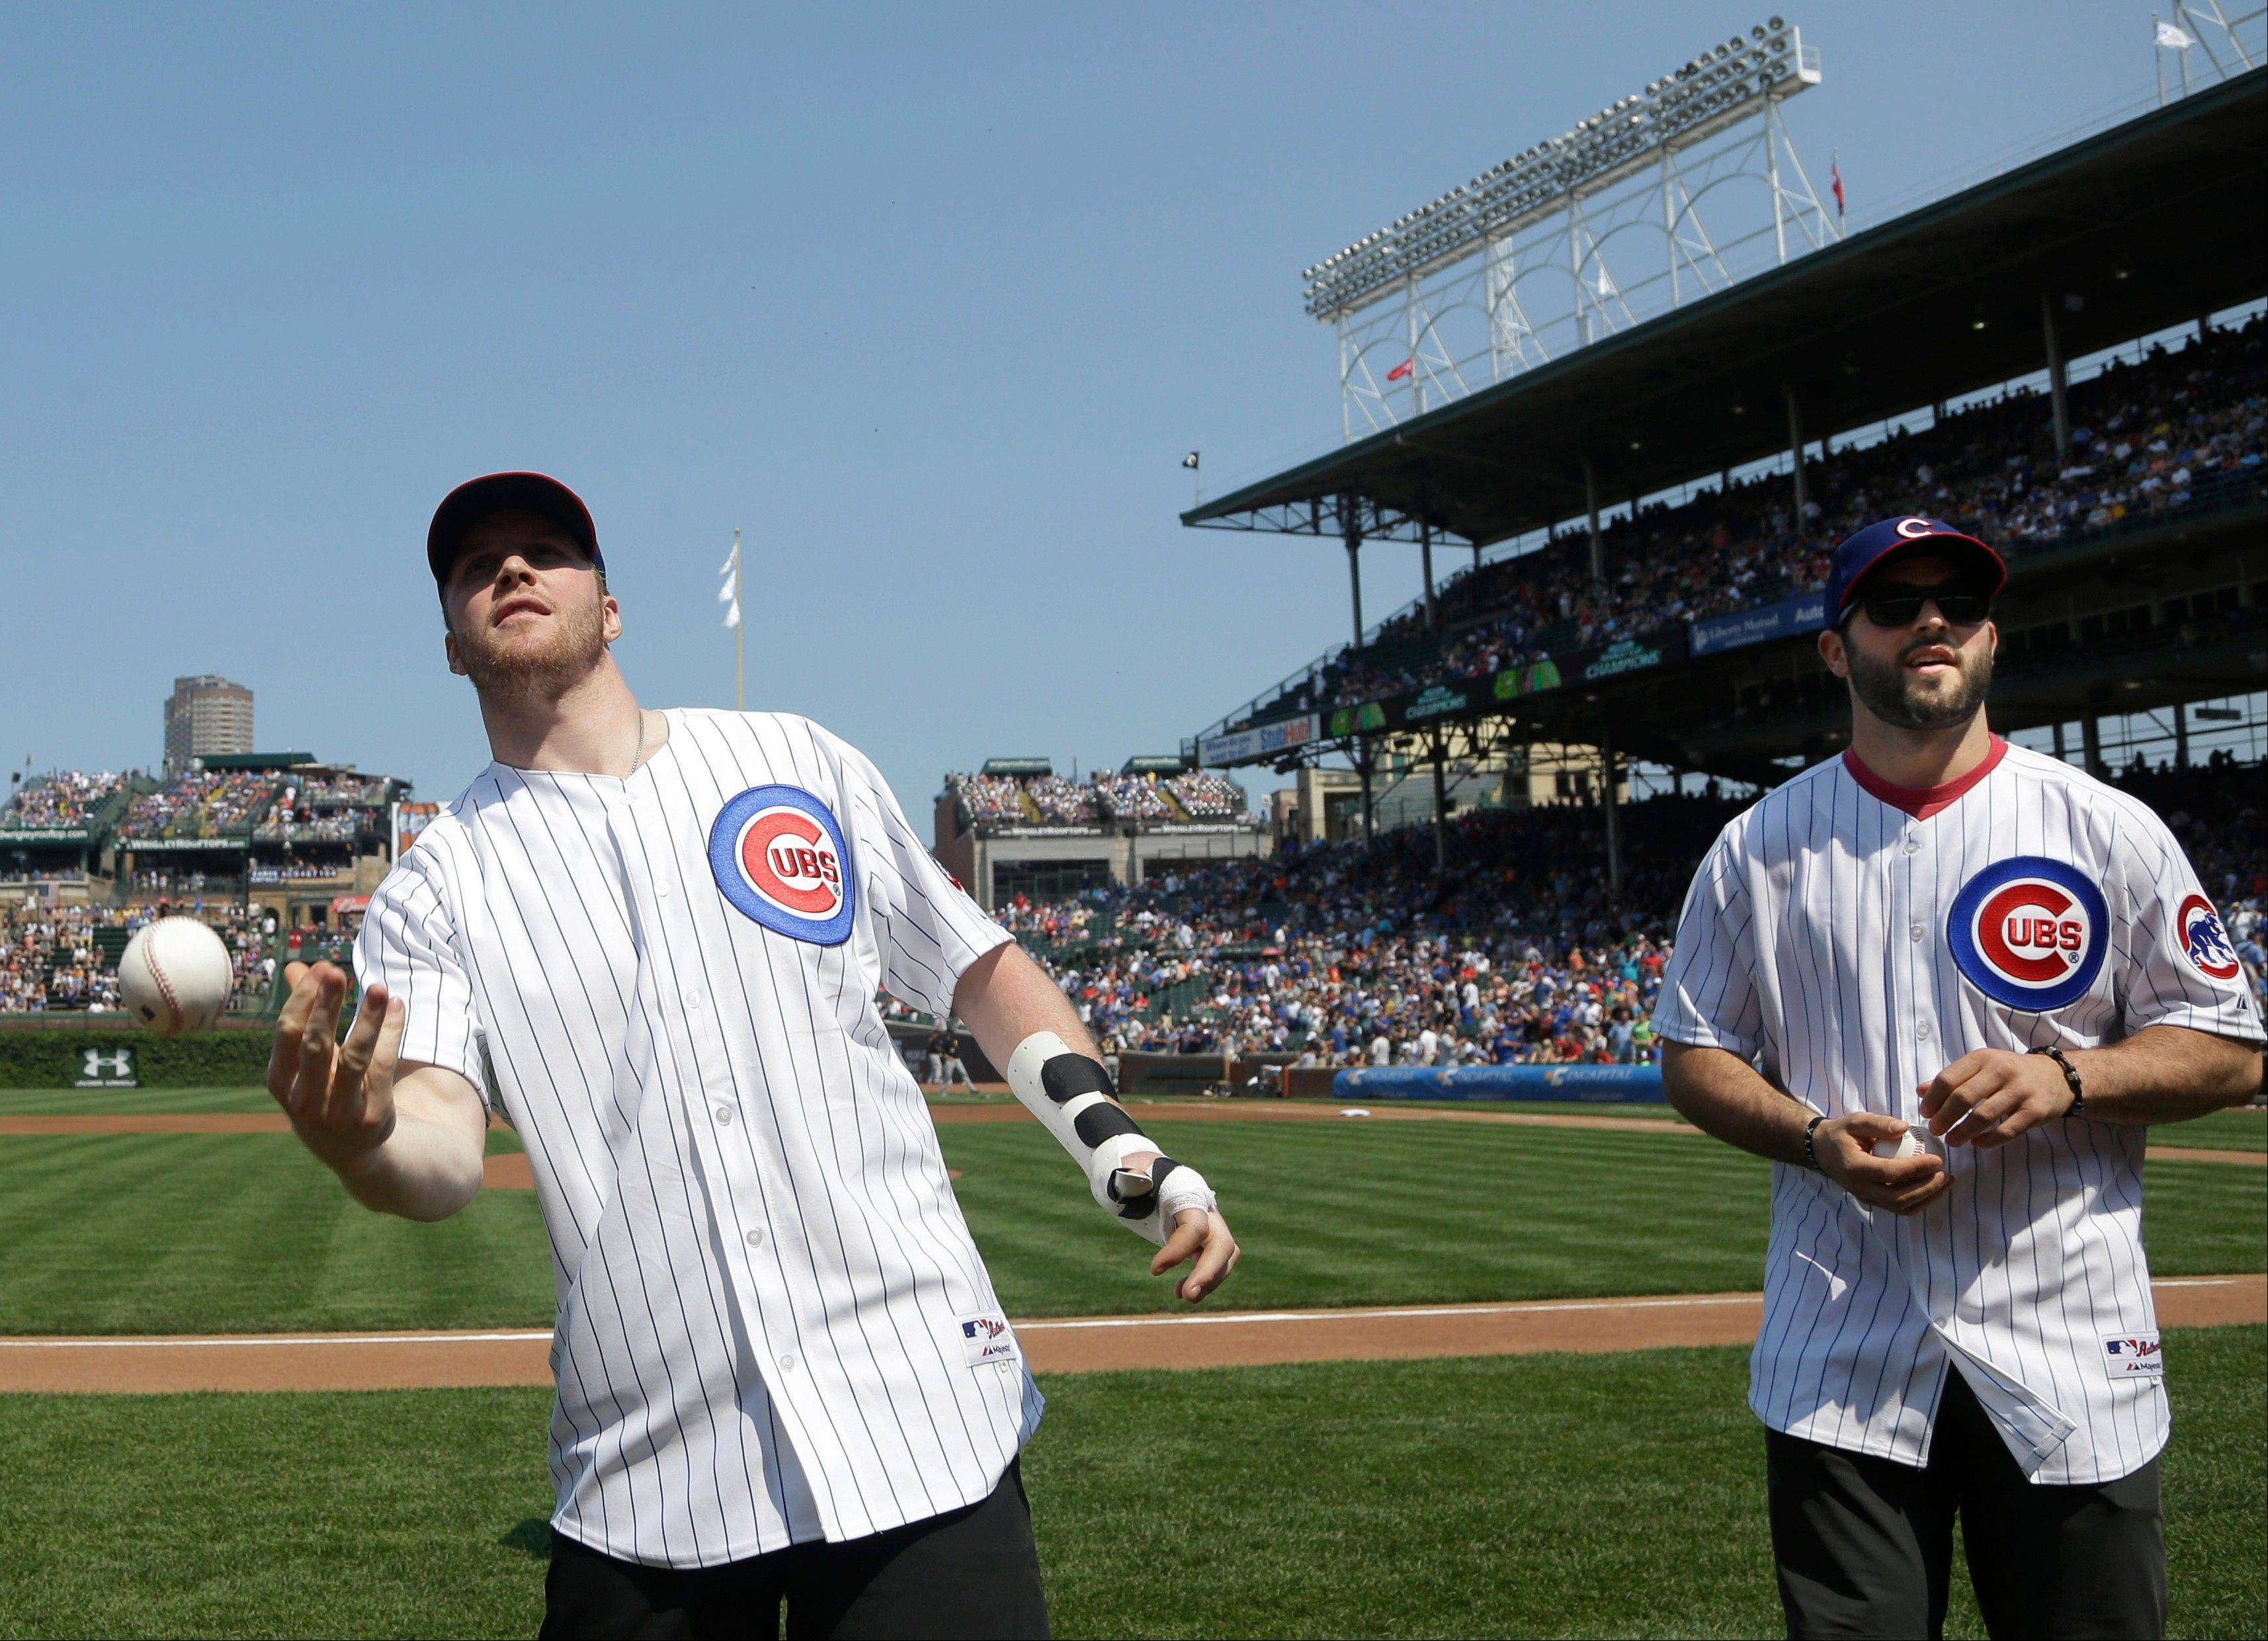 Bryan Bickell, left, throws a ball to fan as fellow Blackhawk Brandon Bollig watches before Friday's game between the Pittsburgh Pirates and the Chicago Cubs at Wrigley Field